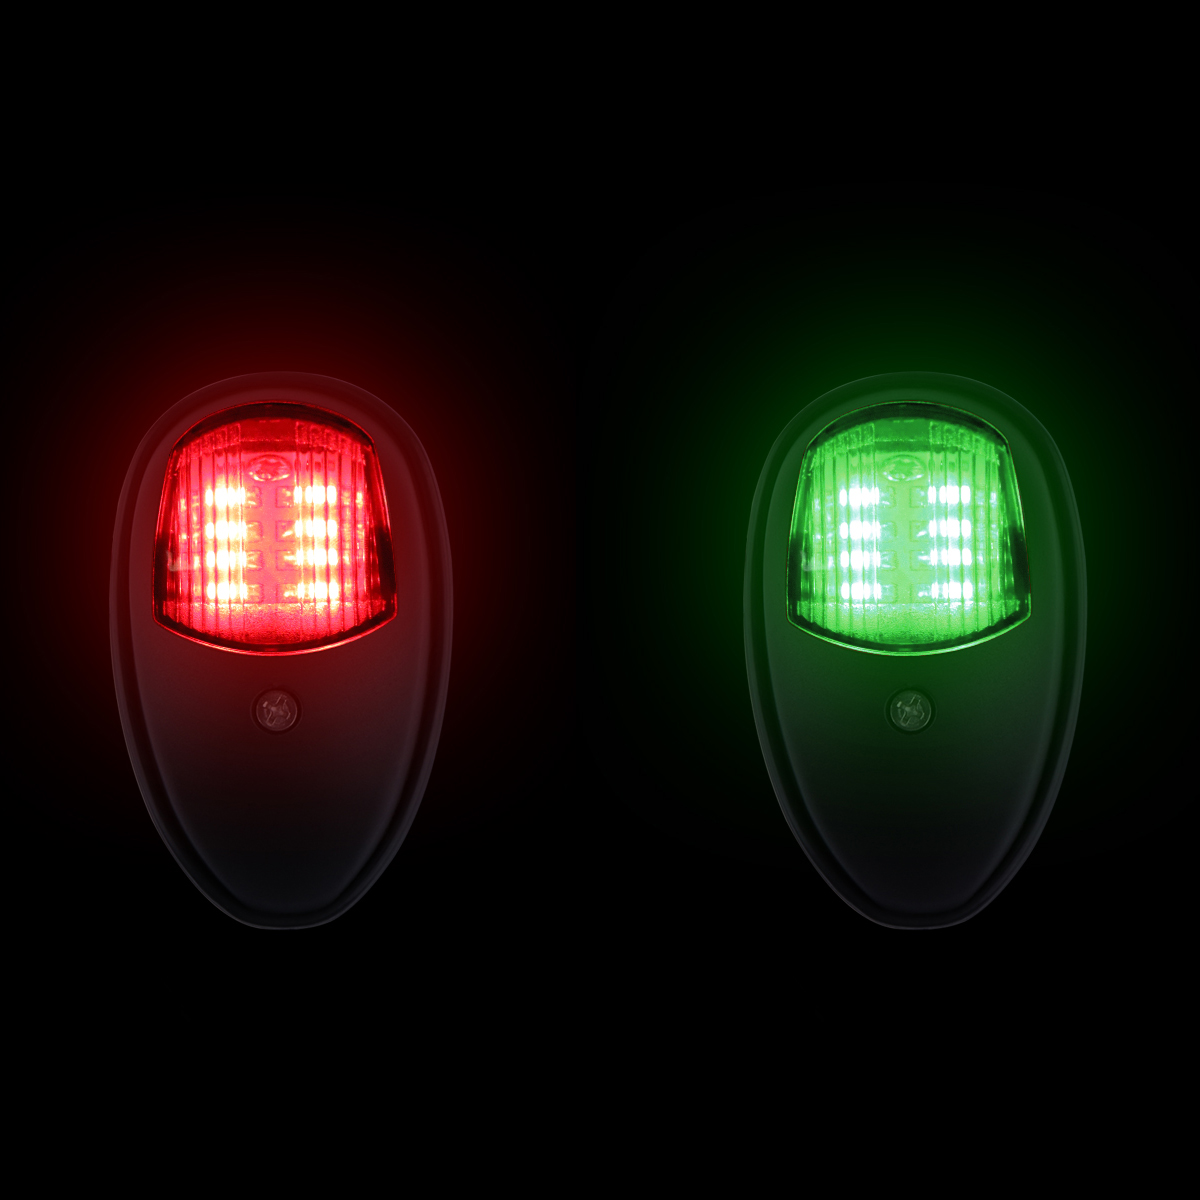 hight resolution of 1 pair of navigation lights green and red color red for port side and green for starboard side it can be use as bow light stern light or running light